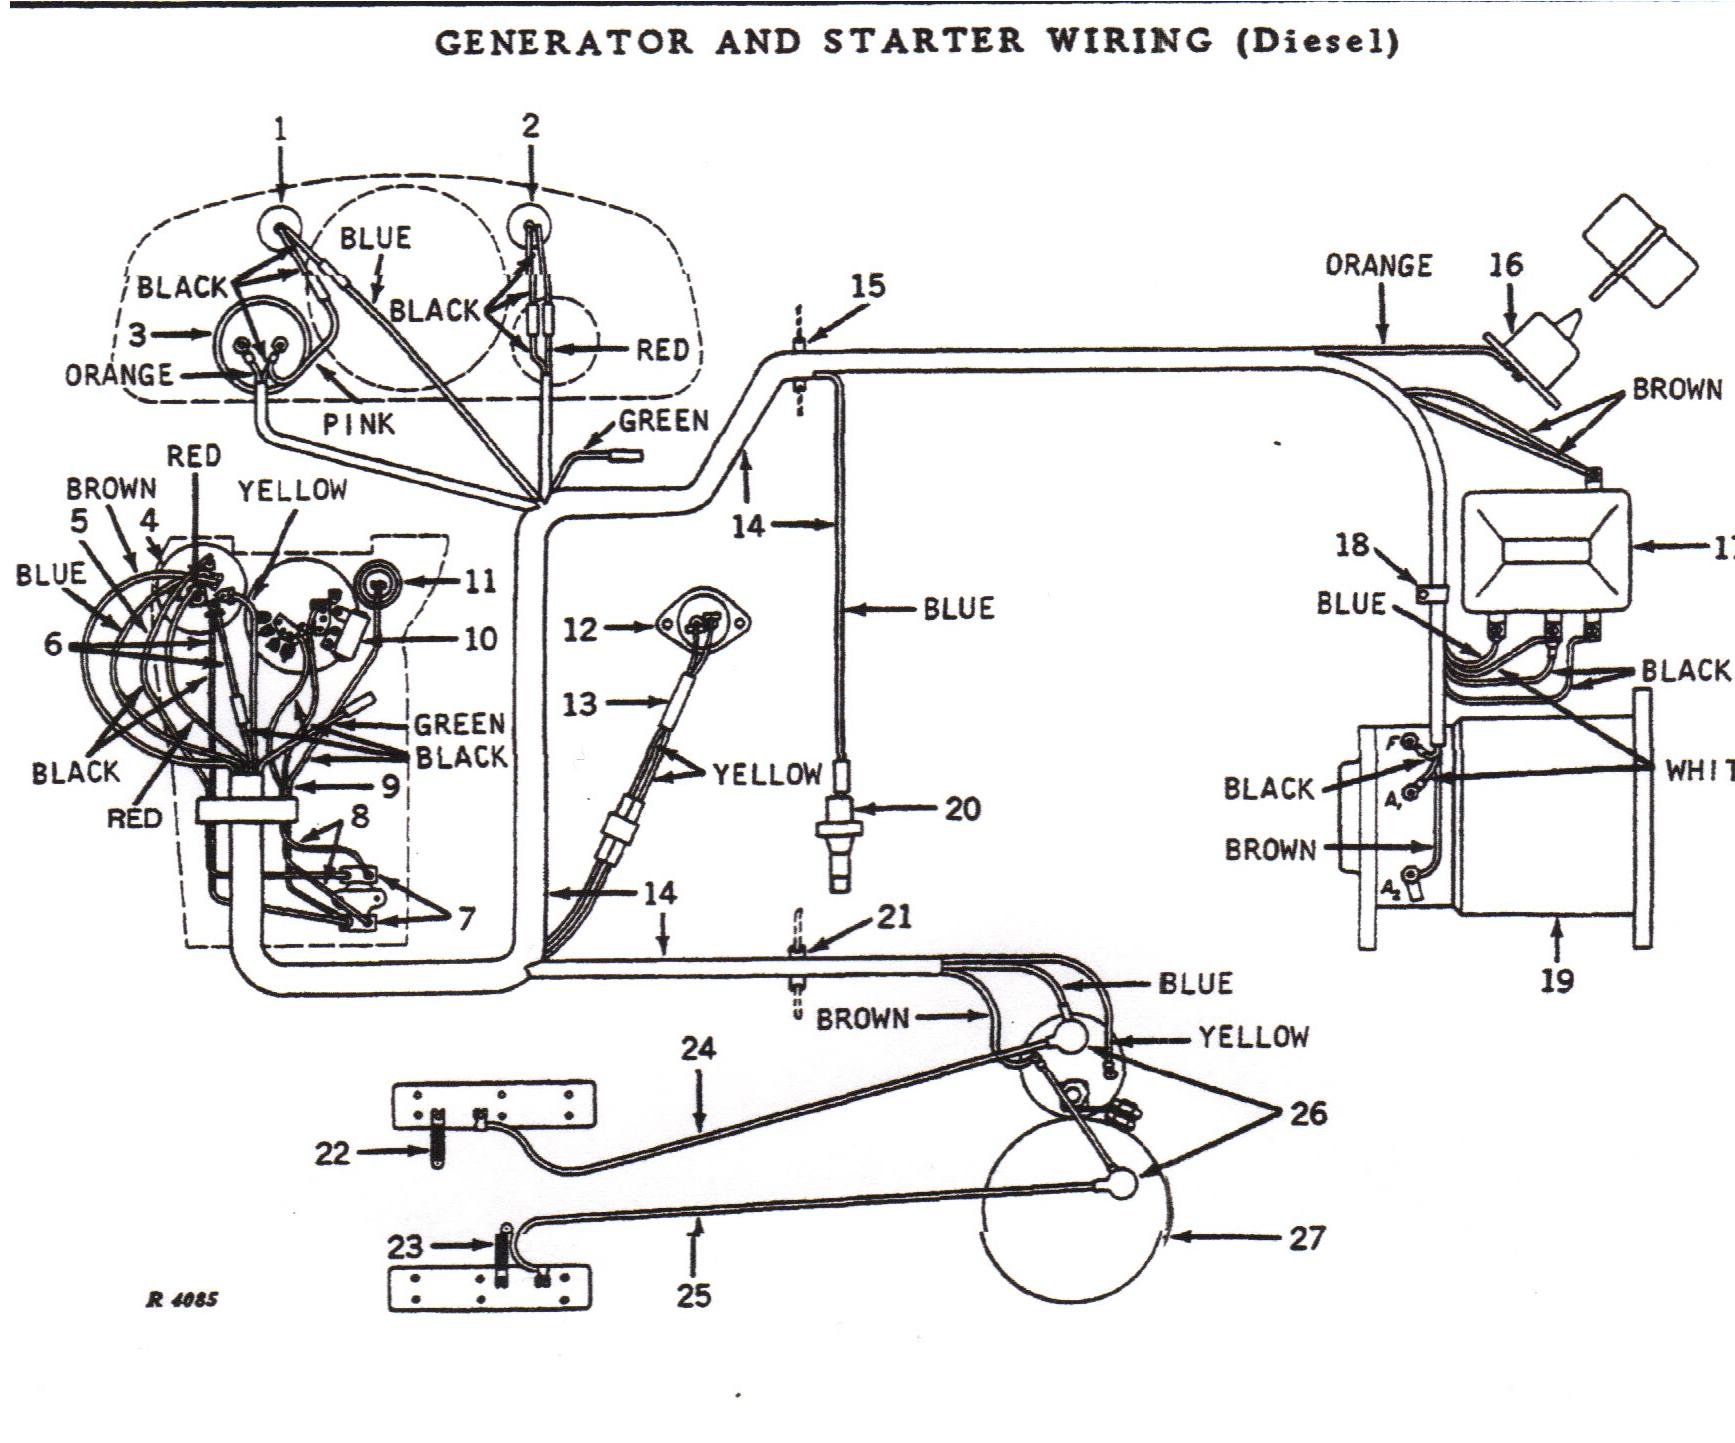 Ignition Switch Wiring Diagram On Kohler Command 12 5 Wiring Diagram